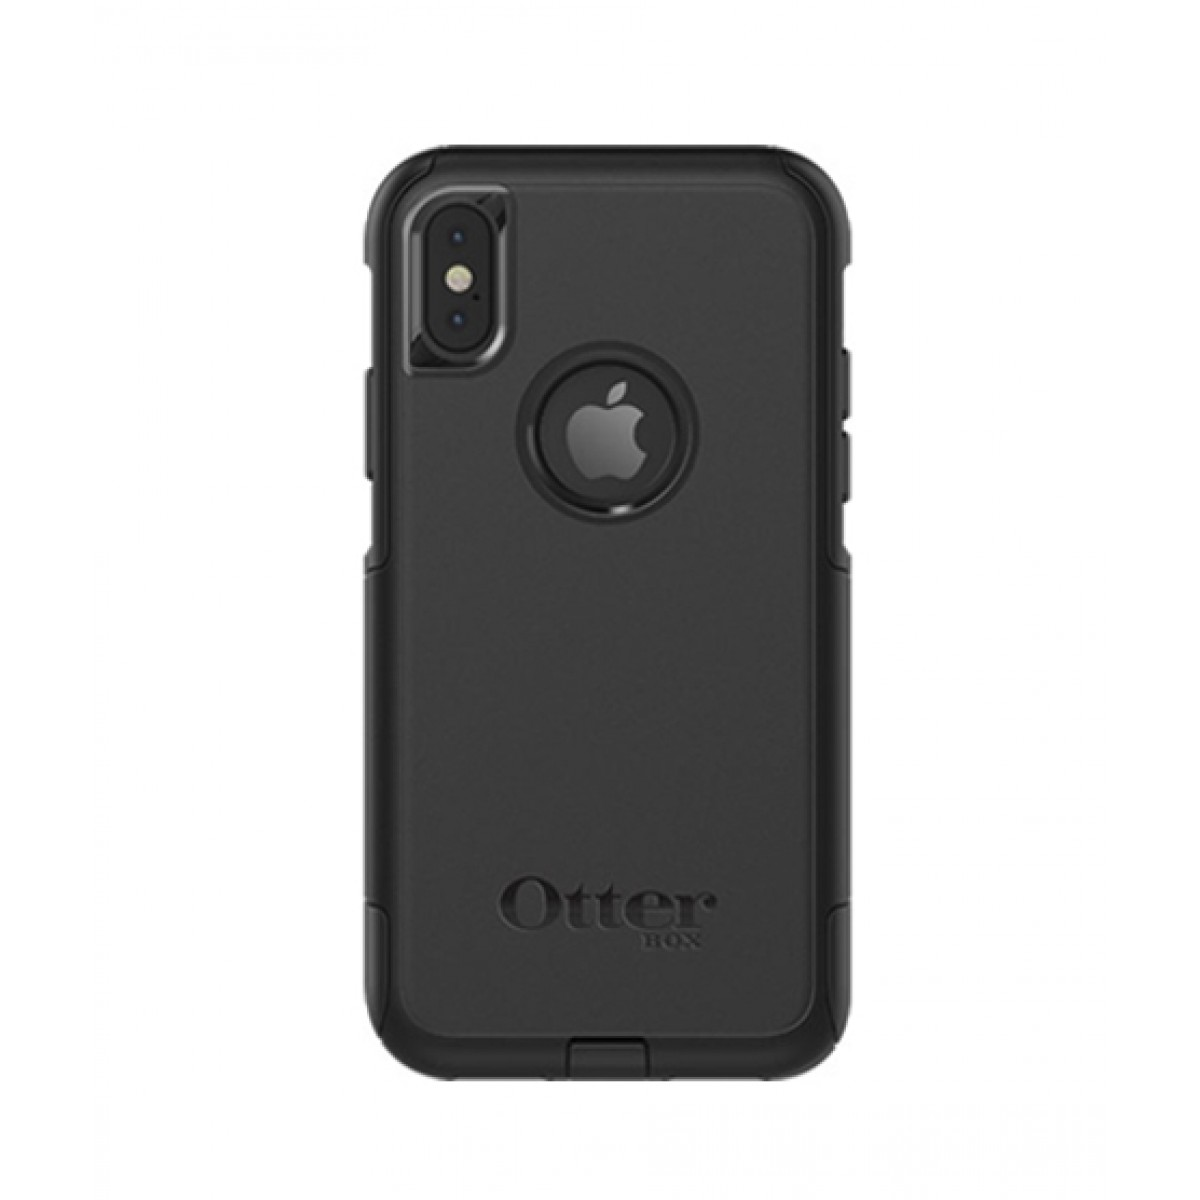 reputable site 08803 7f64c OtterBox Commuter Series Black Case For iPhone X/XS